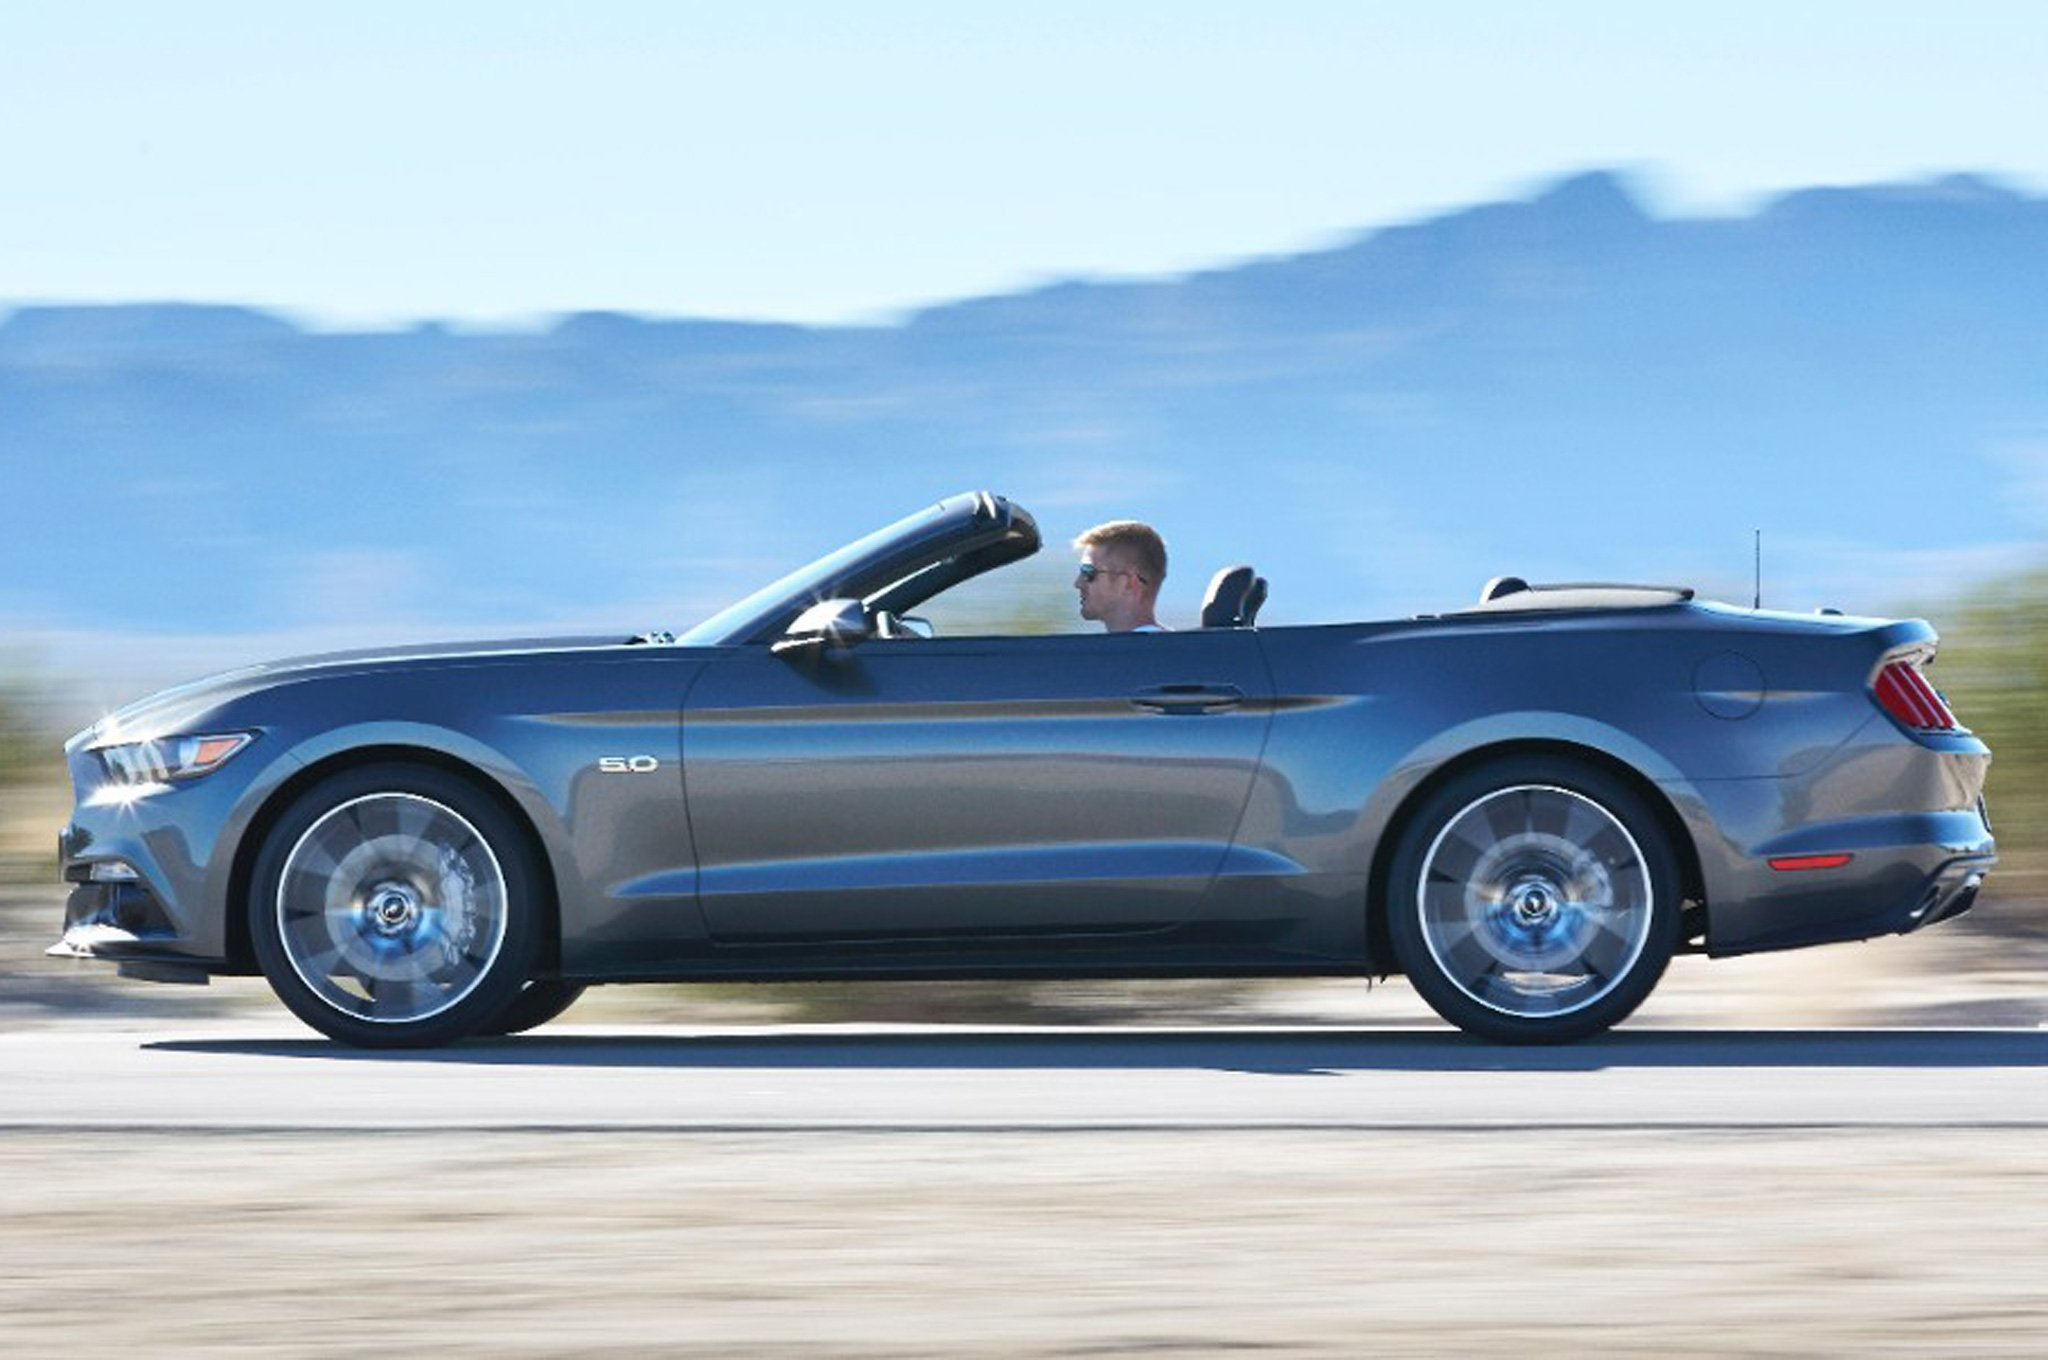 2015 Ford Mustang Convertible HD Desktop Background Download 2048x1360